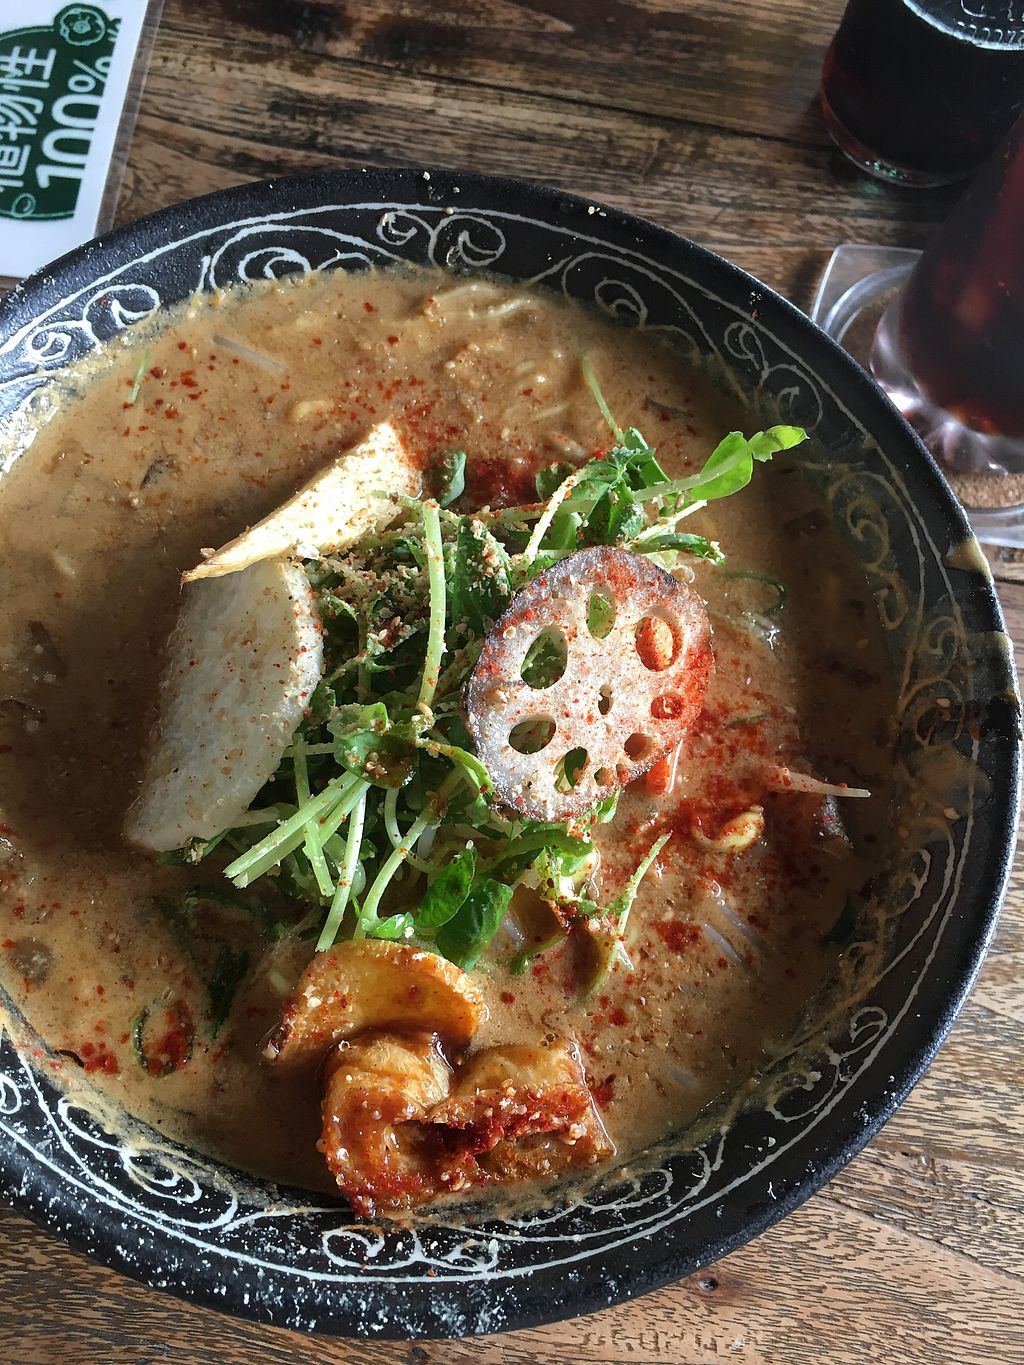 """Photo of Vegans Cafe and Restaurant  by <a href=""""/members/profile/BecBarke"""">BecBarke</a> <br/>Miso Ramen!  <br/> April 21, 2018  - <a href='/contact/abuse/image/29114/388835'>Report</a>"""